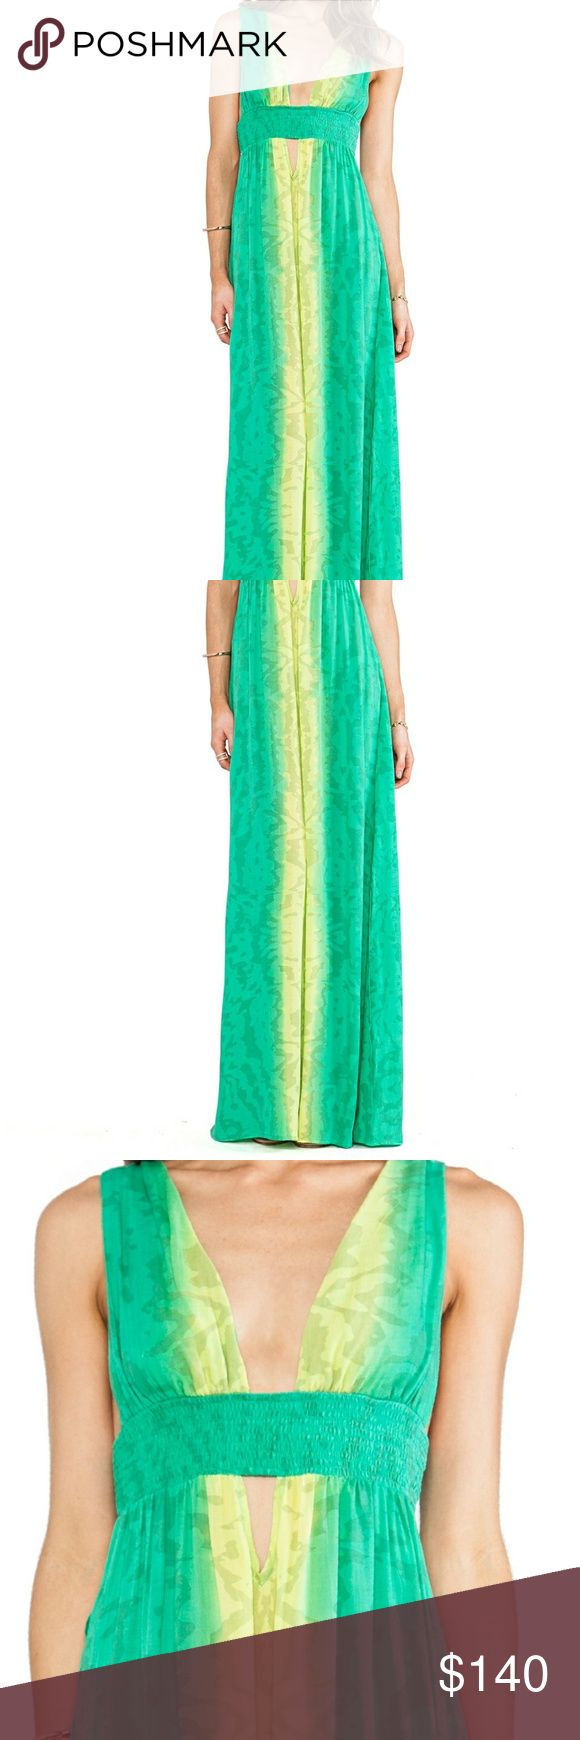 NWT Indah Green Anjeli Plunge Festival Maxi Dress A beautiful shade of green Plunging neckline with side cutout High slits on skirt  Soft lightweight cotton Elastic band at empire  waist  A great look for summer In good condition, never been worn and tag still attached Made by Indah, size XS Indah Dresses Maxi